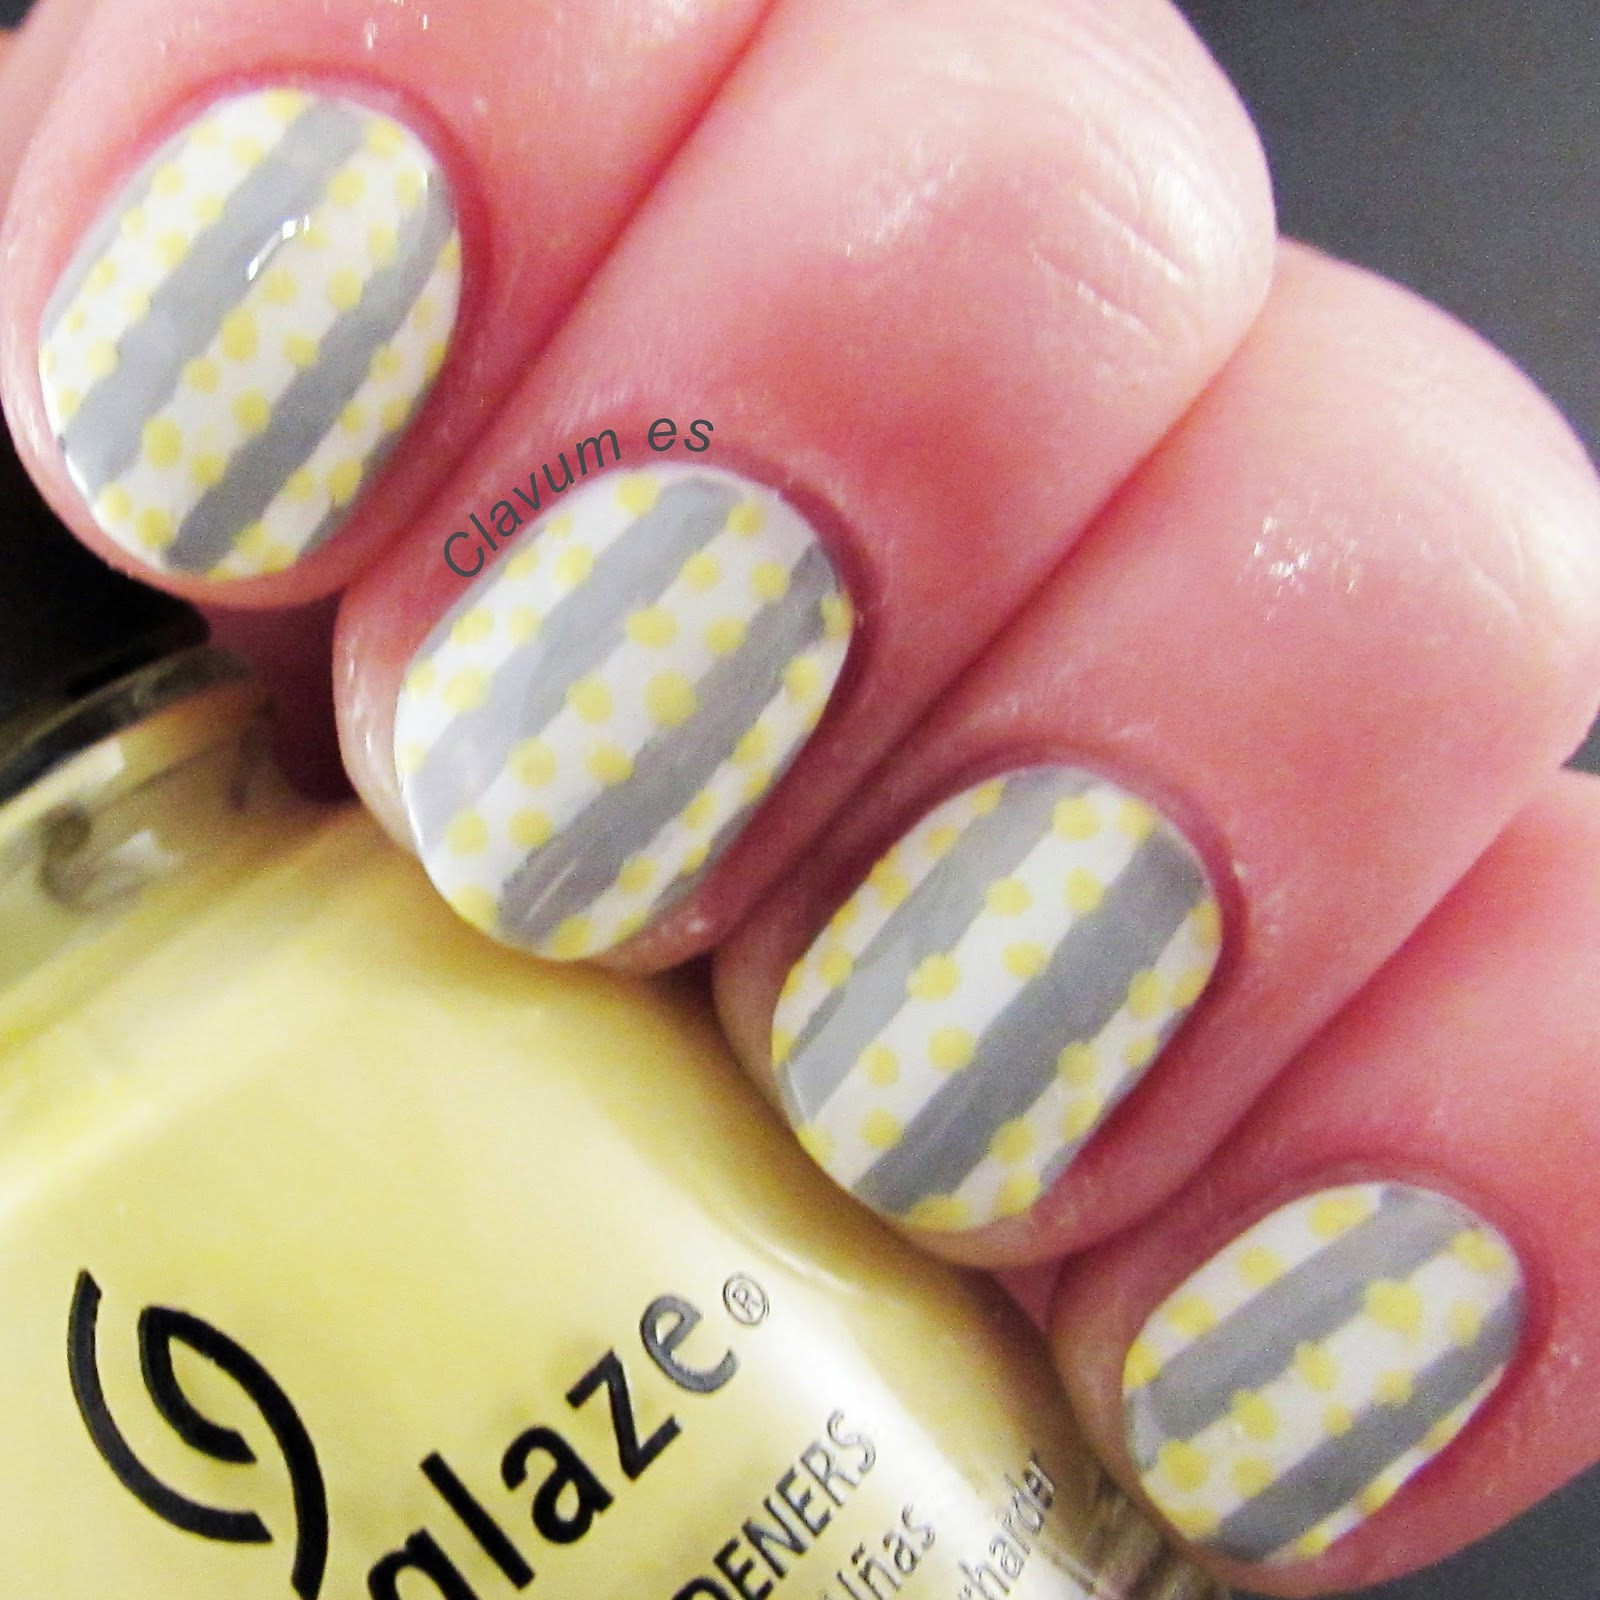 Yellow and Grey Pattern Nail Art